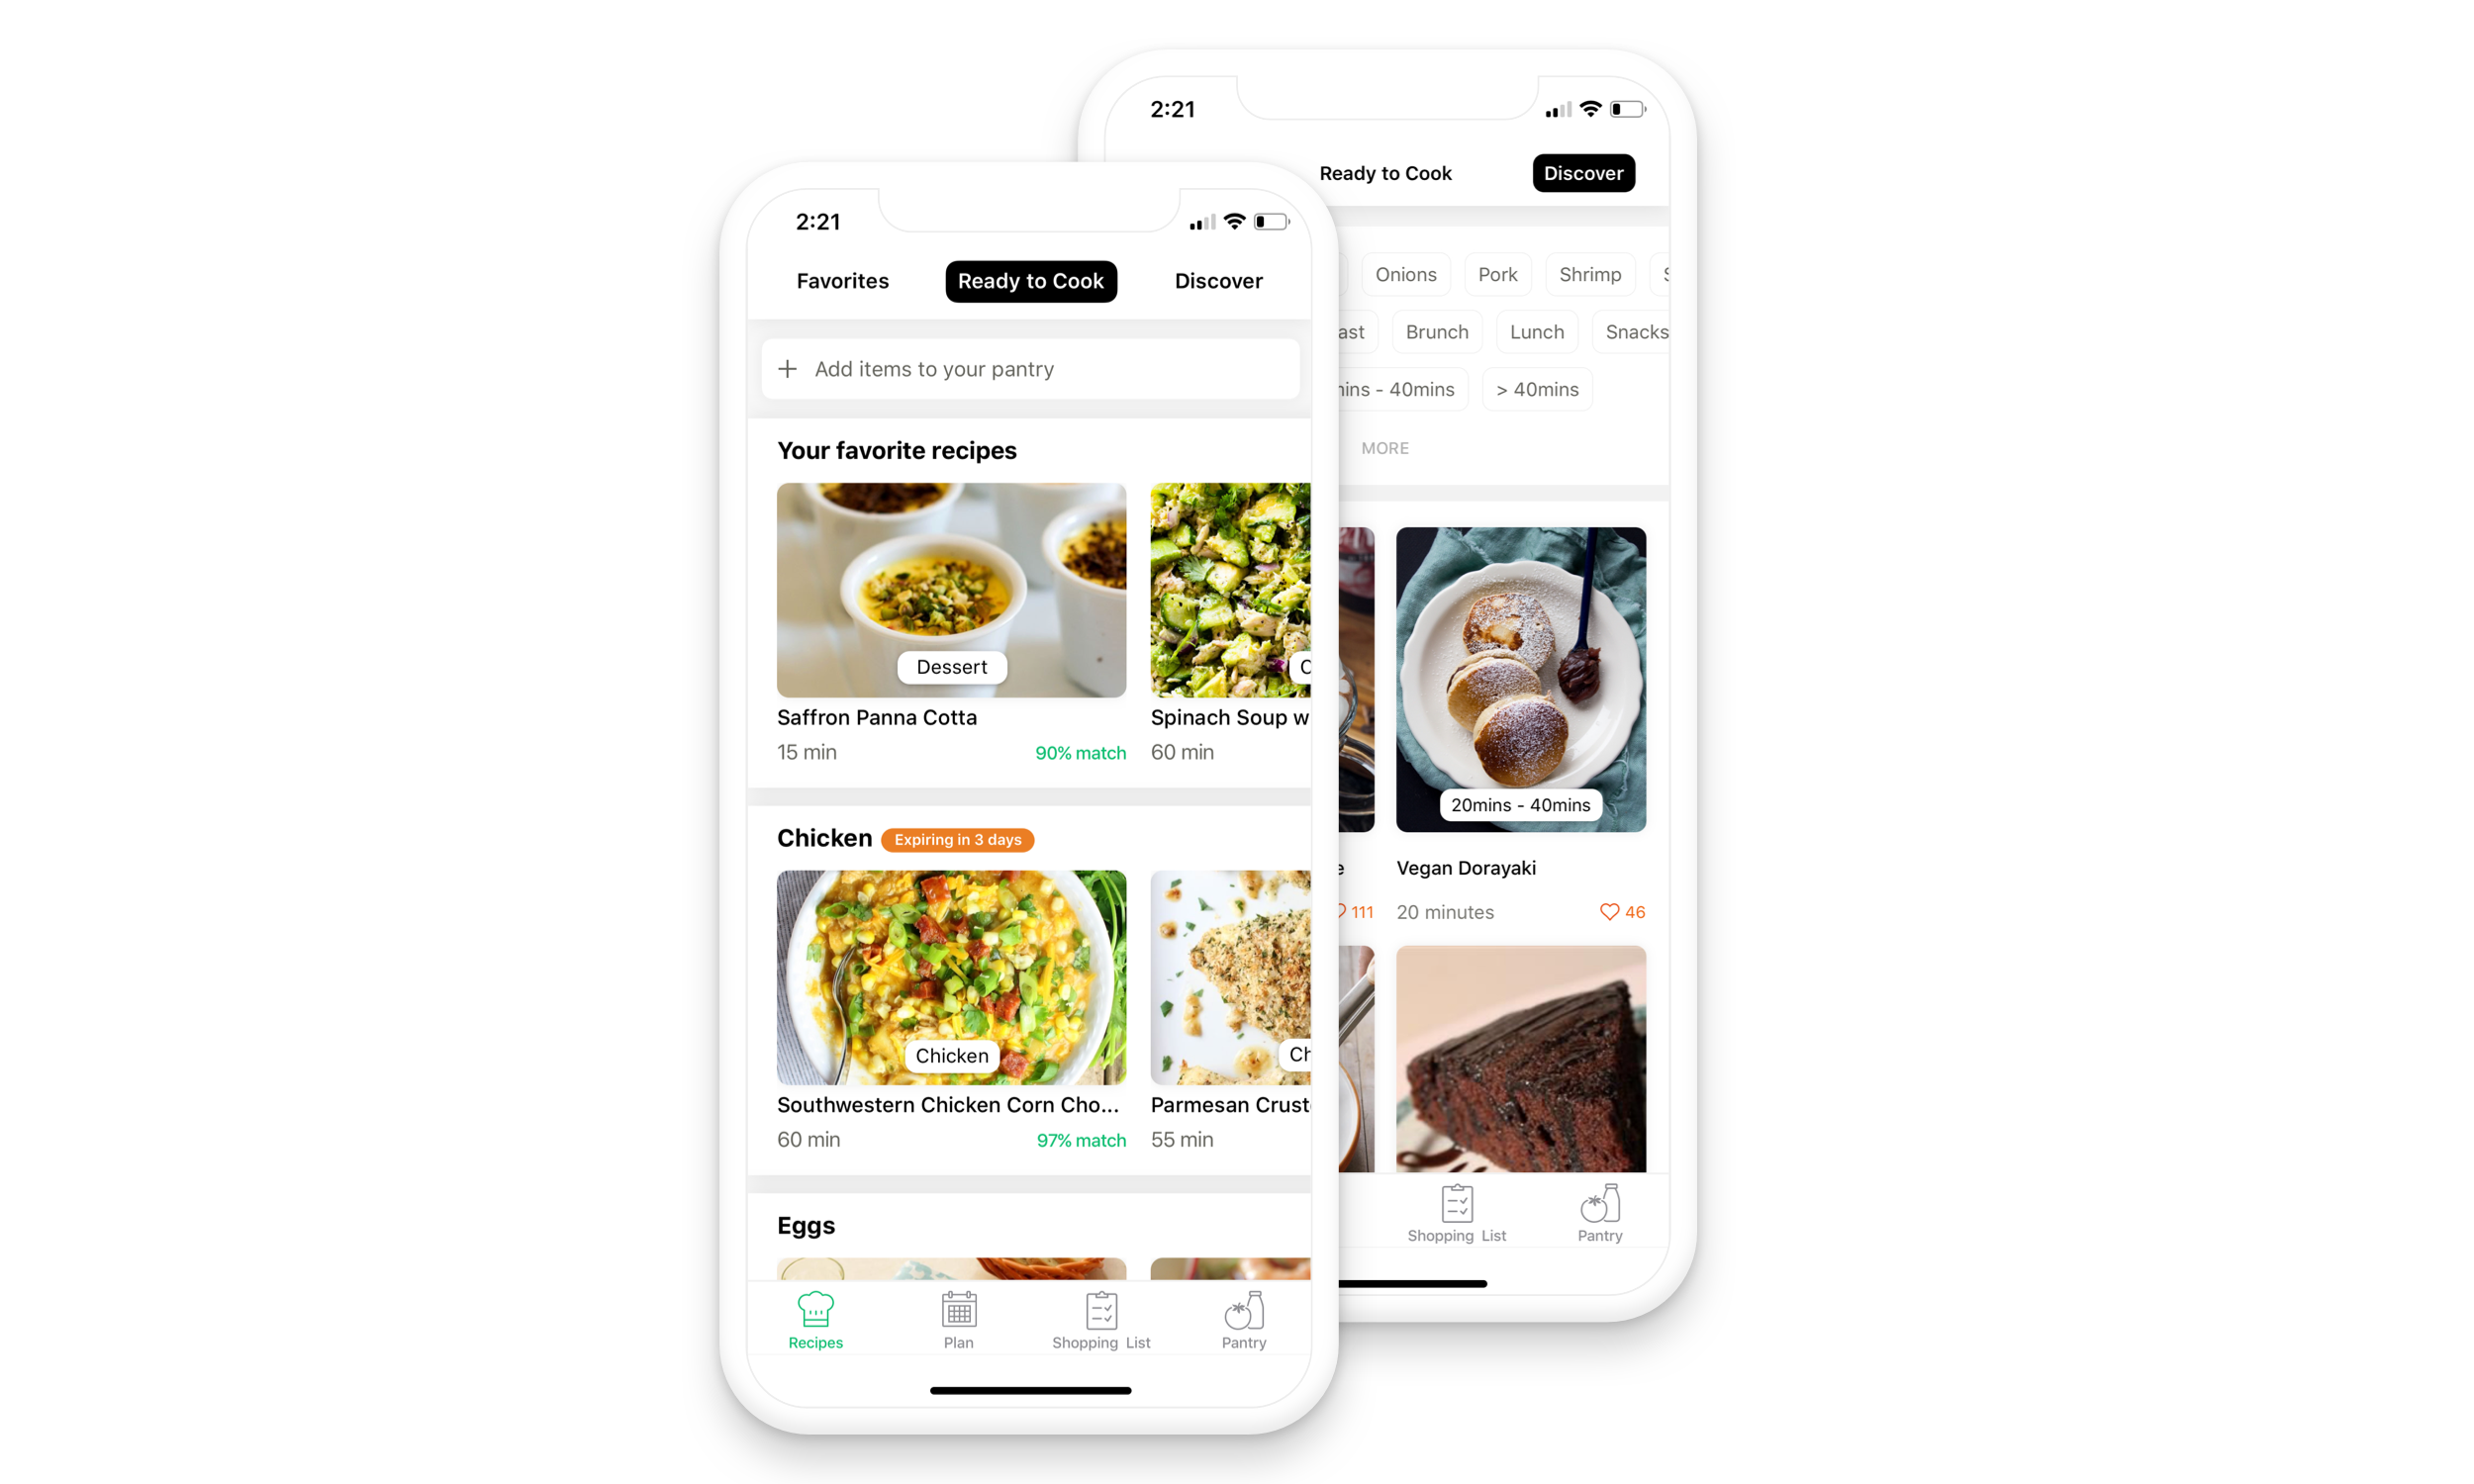 Ready to cook recipes at your fingertips - Get personalized recipe suggestions based on ingredients available in your pantry and dietary prefer.